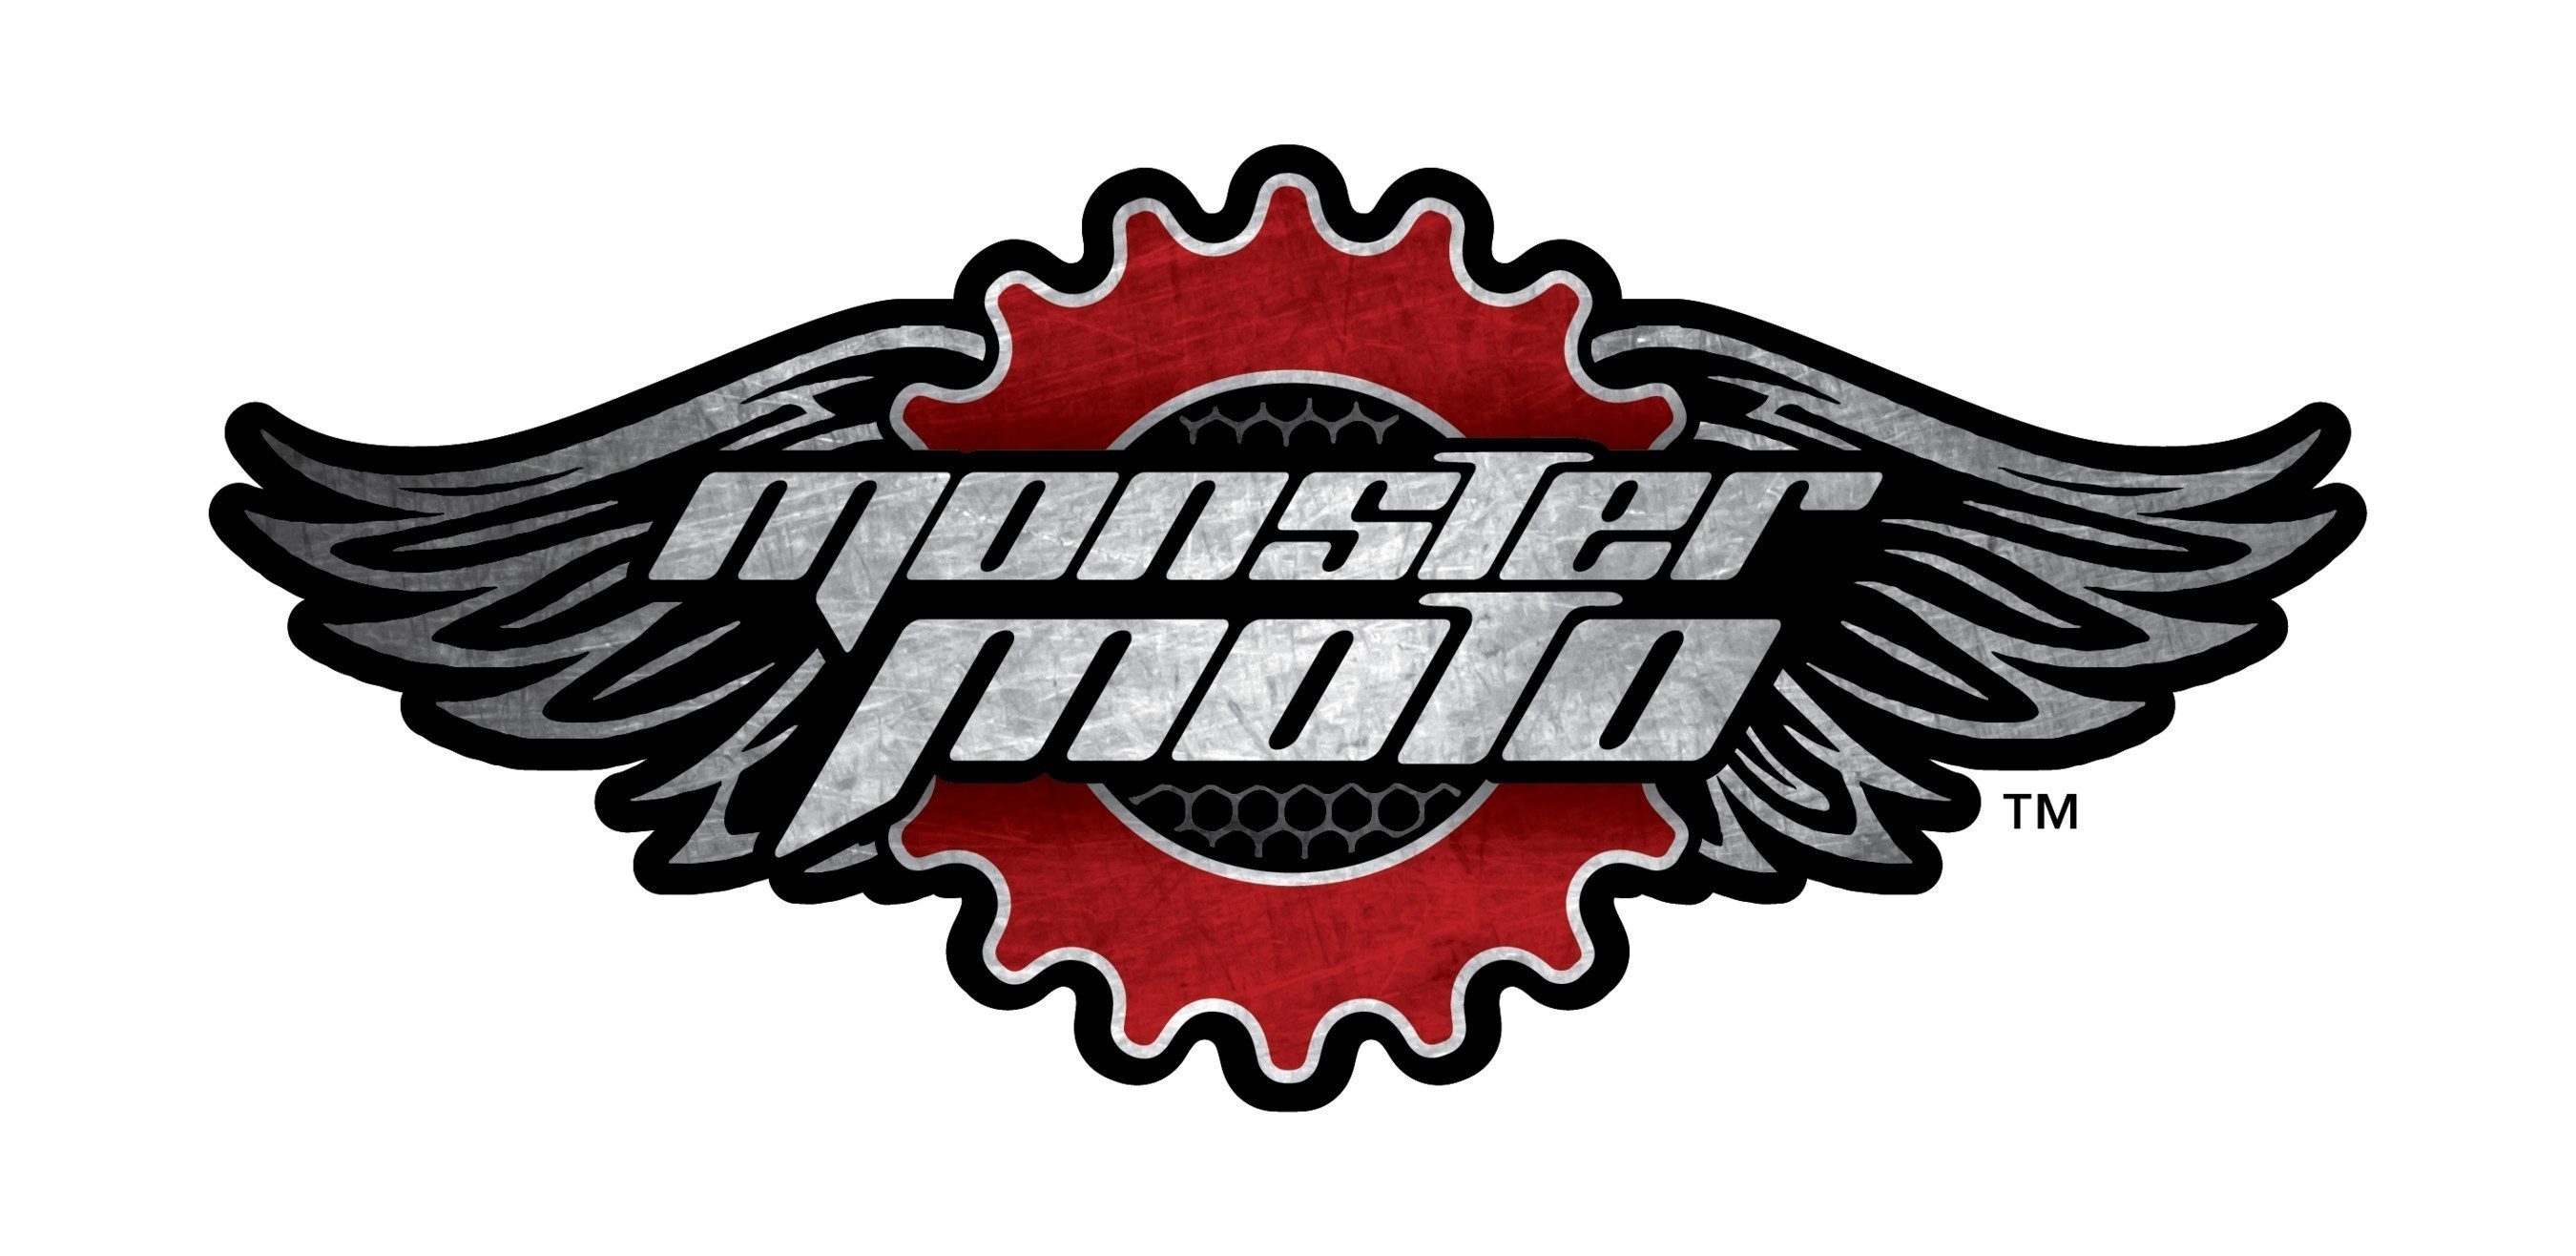 Monster Moto is a maker of high quality, affordable mini bikes and go-karts. To learn more about Monster Moto, visit www.monstermoto.com or contact media@monstermoto.com.